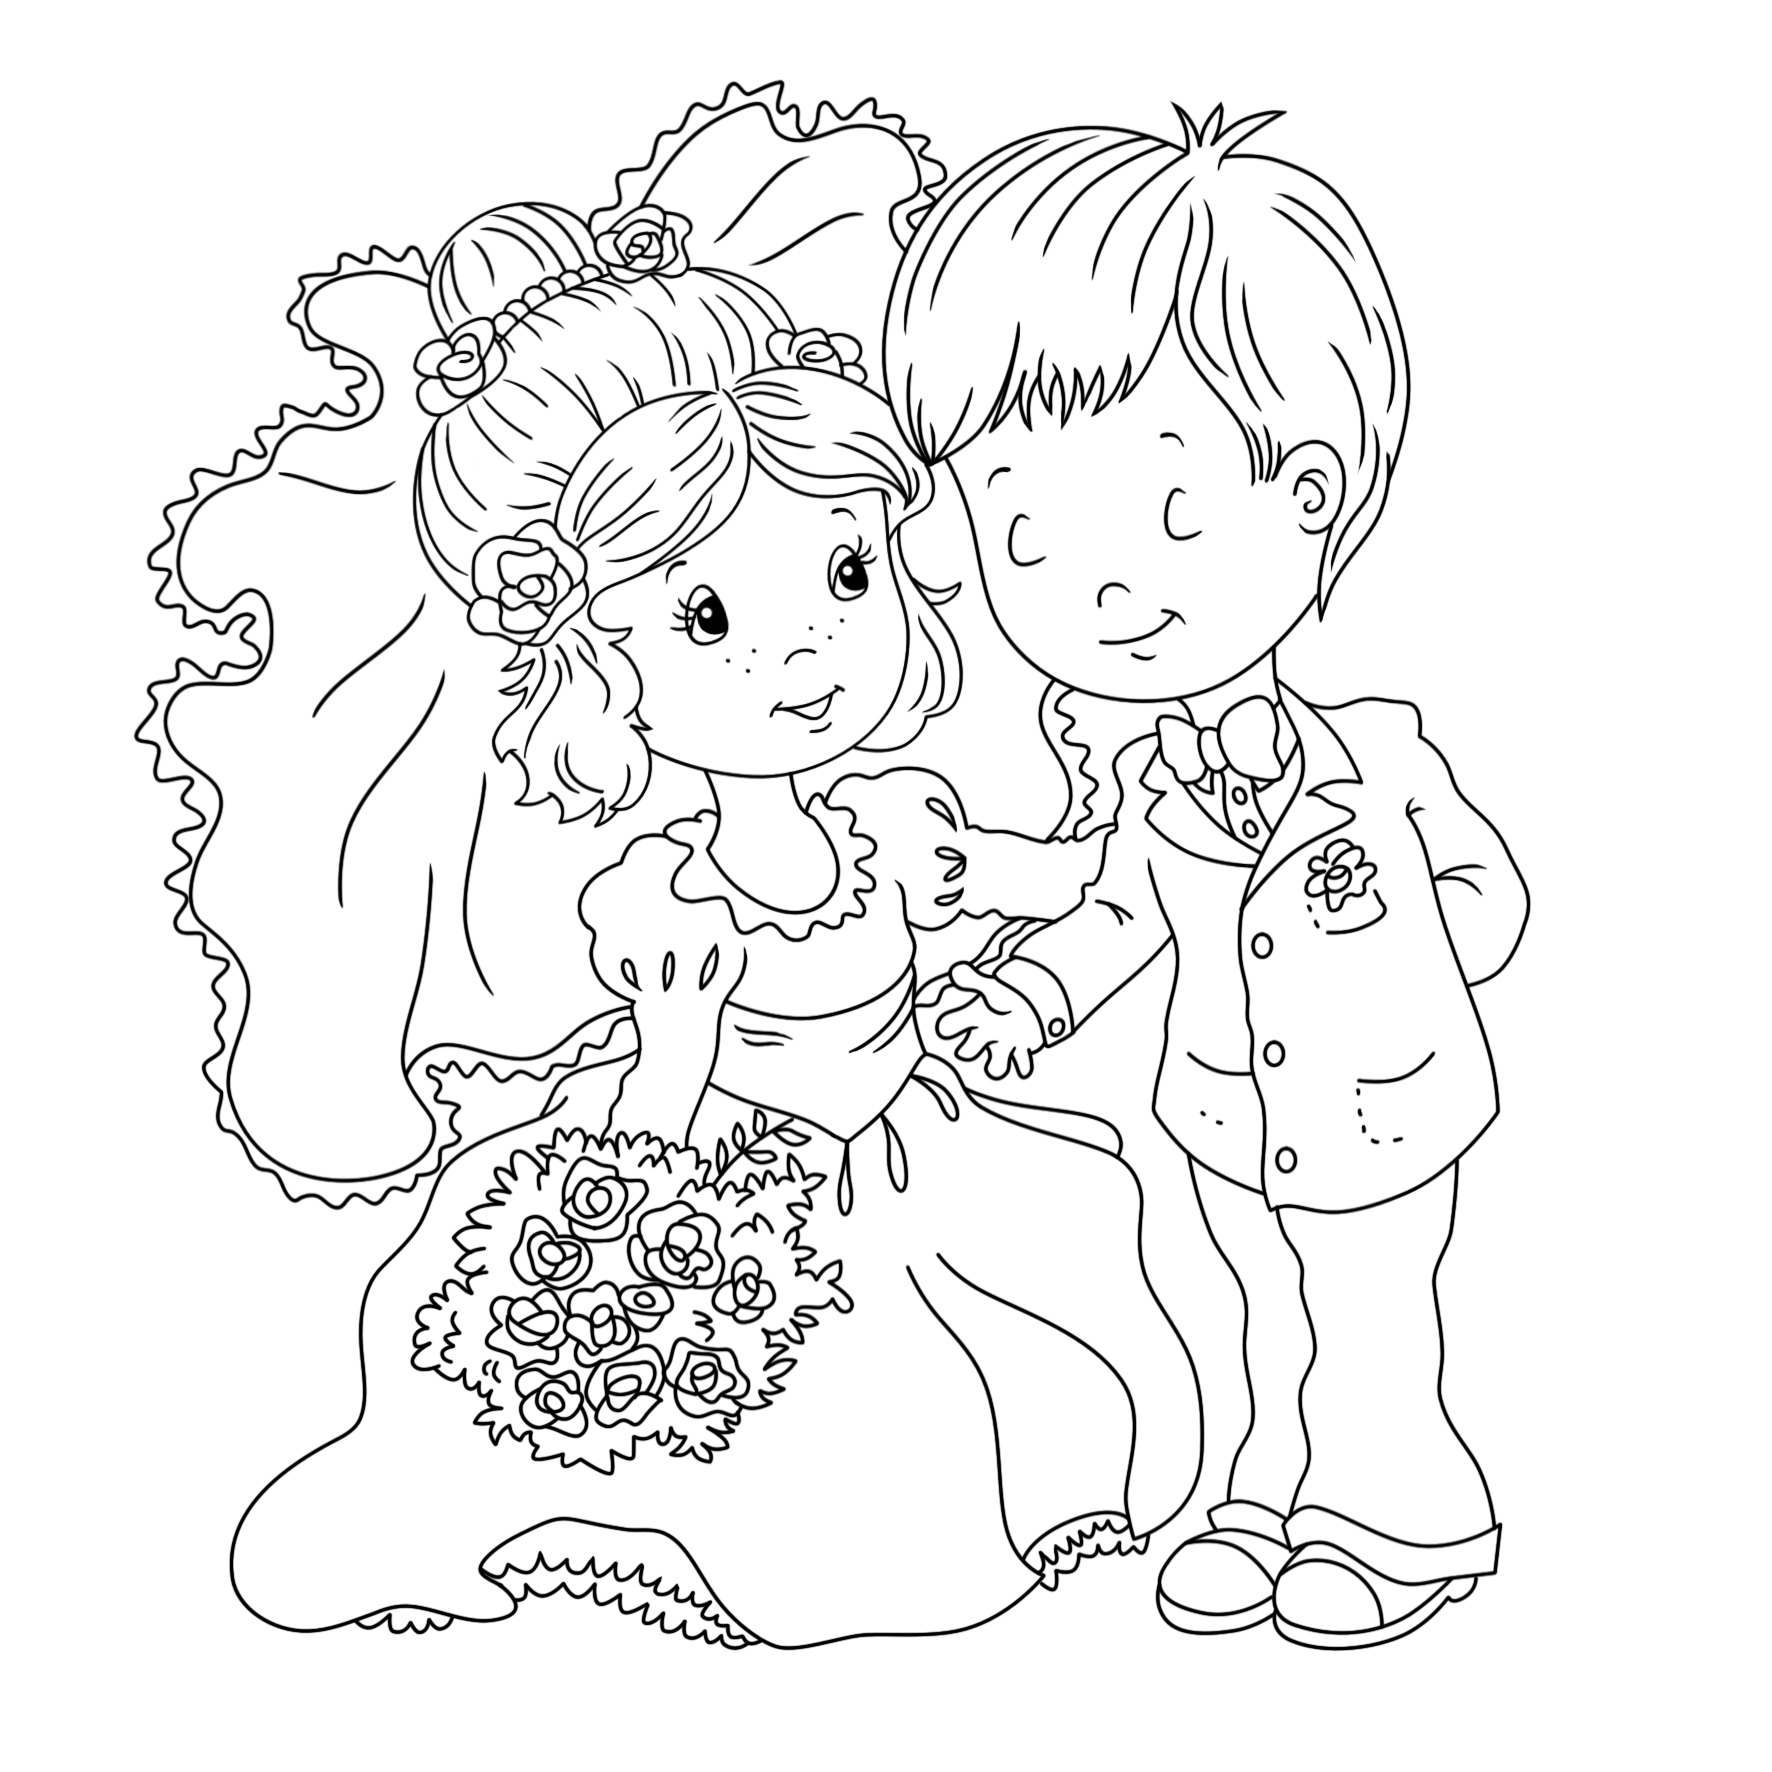 coloring wedding activities for kids colouring books wedding activities for coloring kids